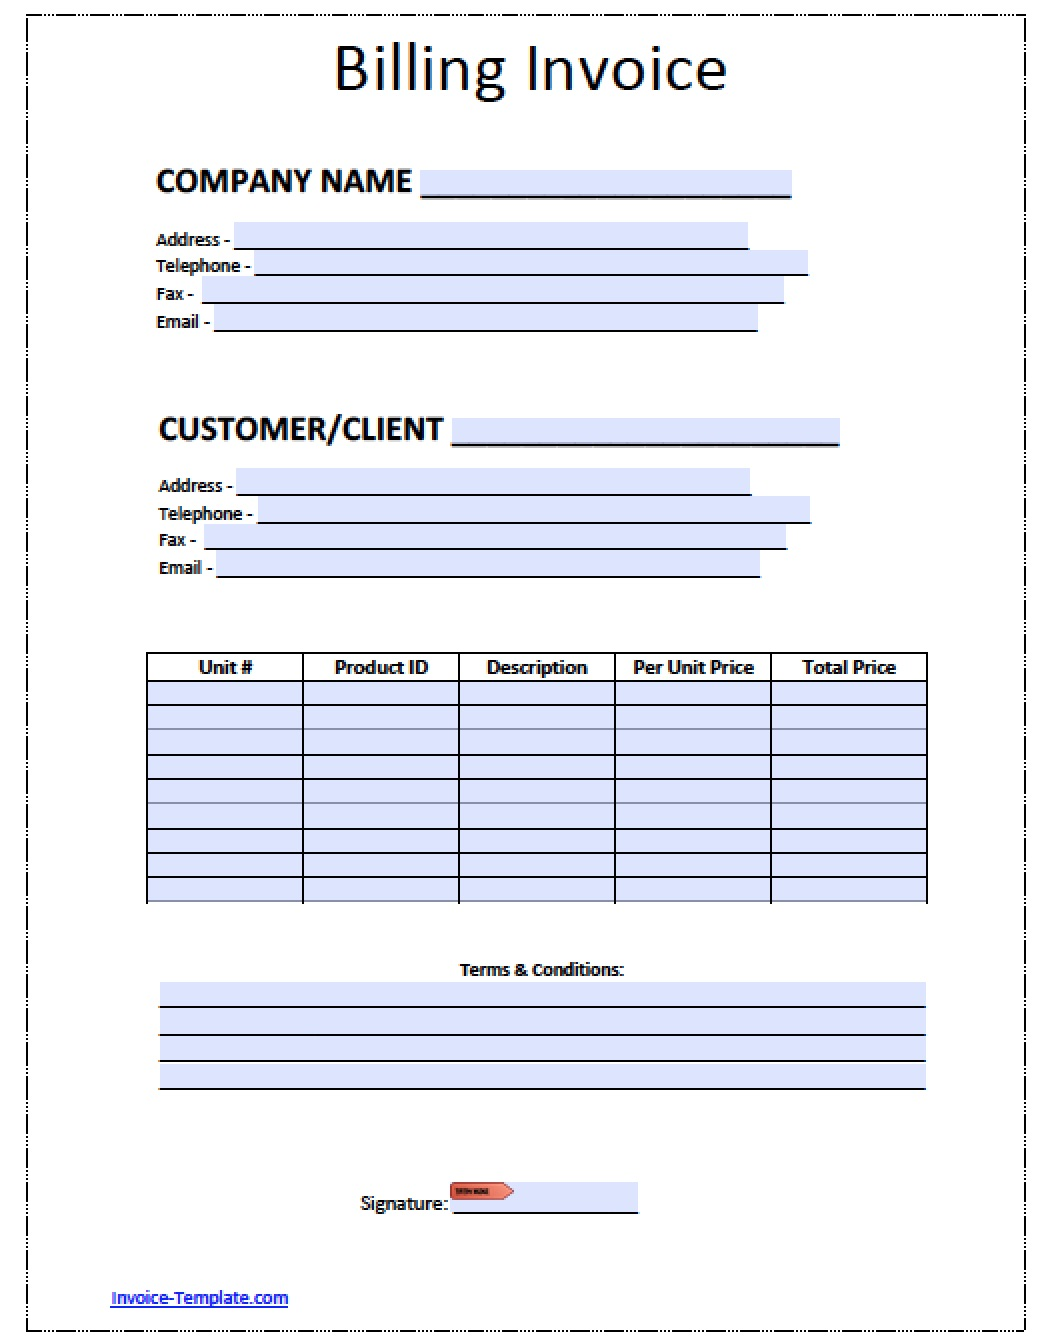 Free Billing Invoice Template Excel PDF Word Doc - Template for billing invoice